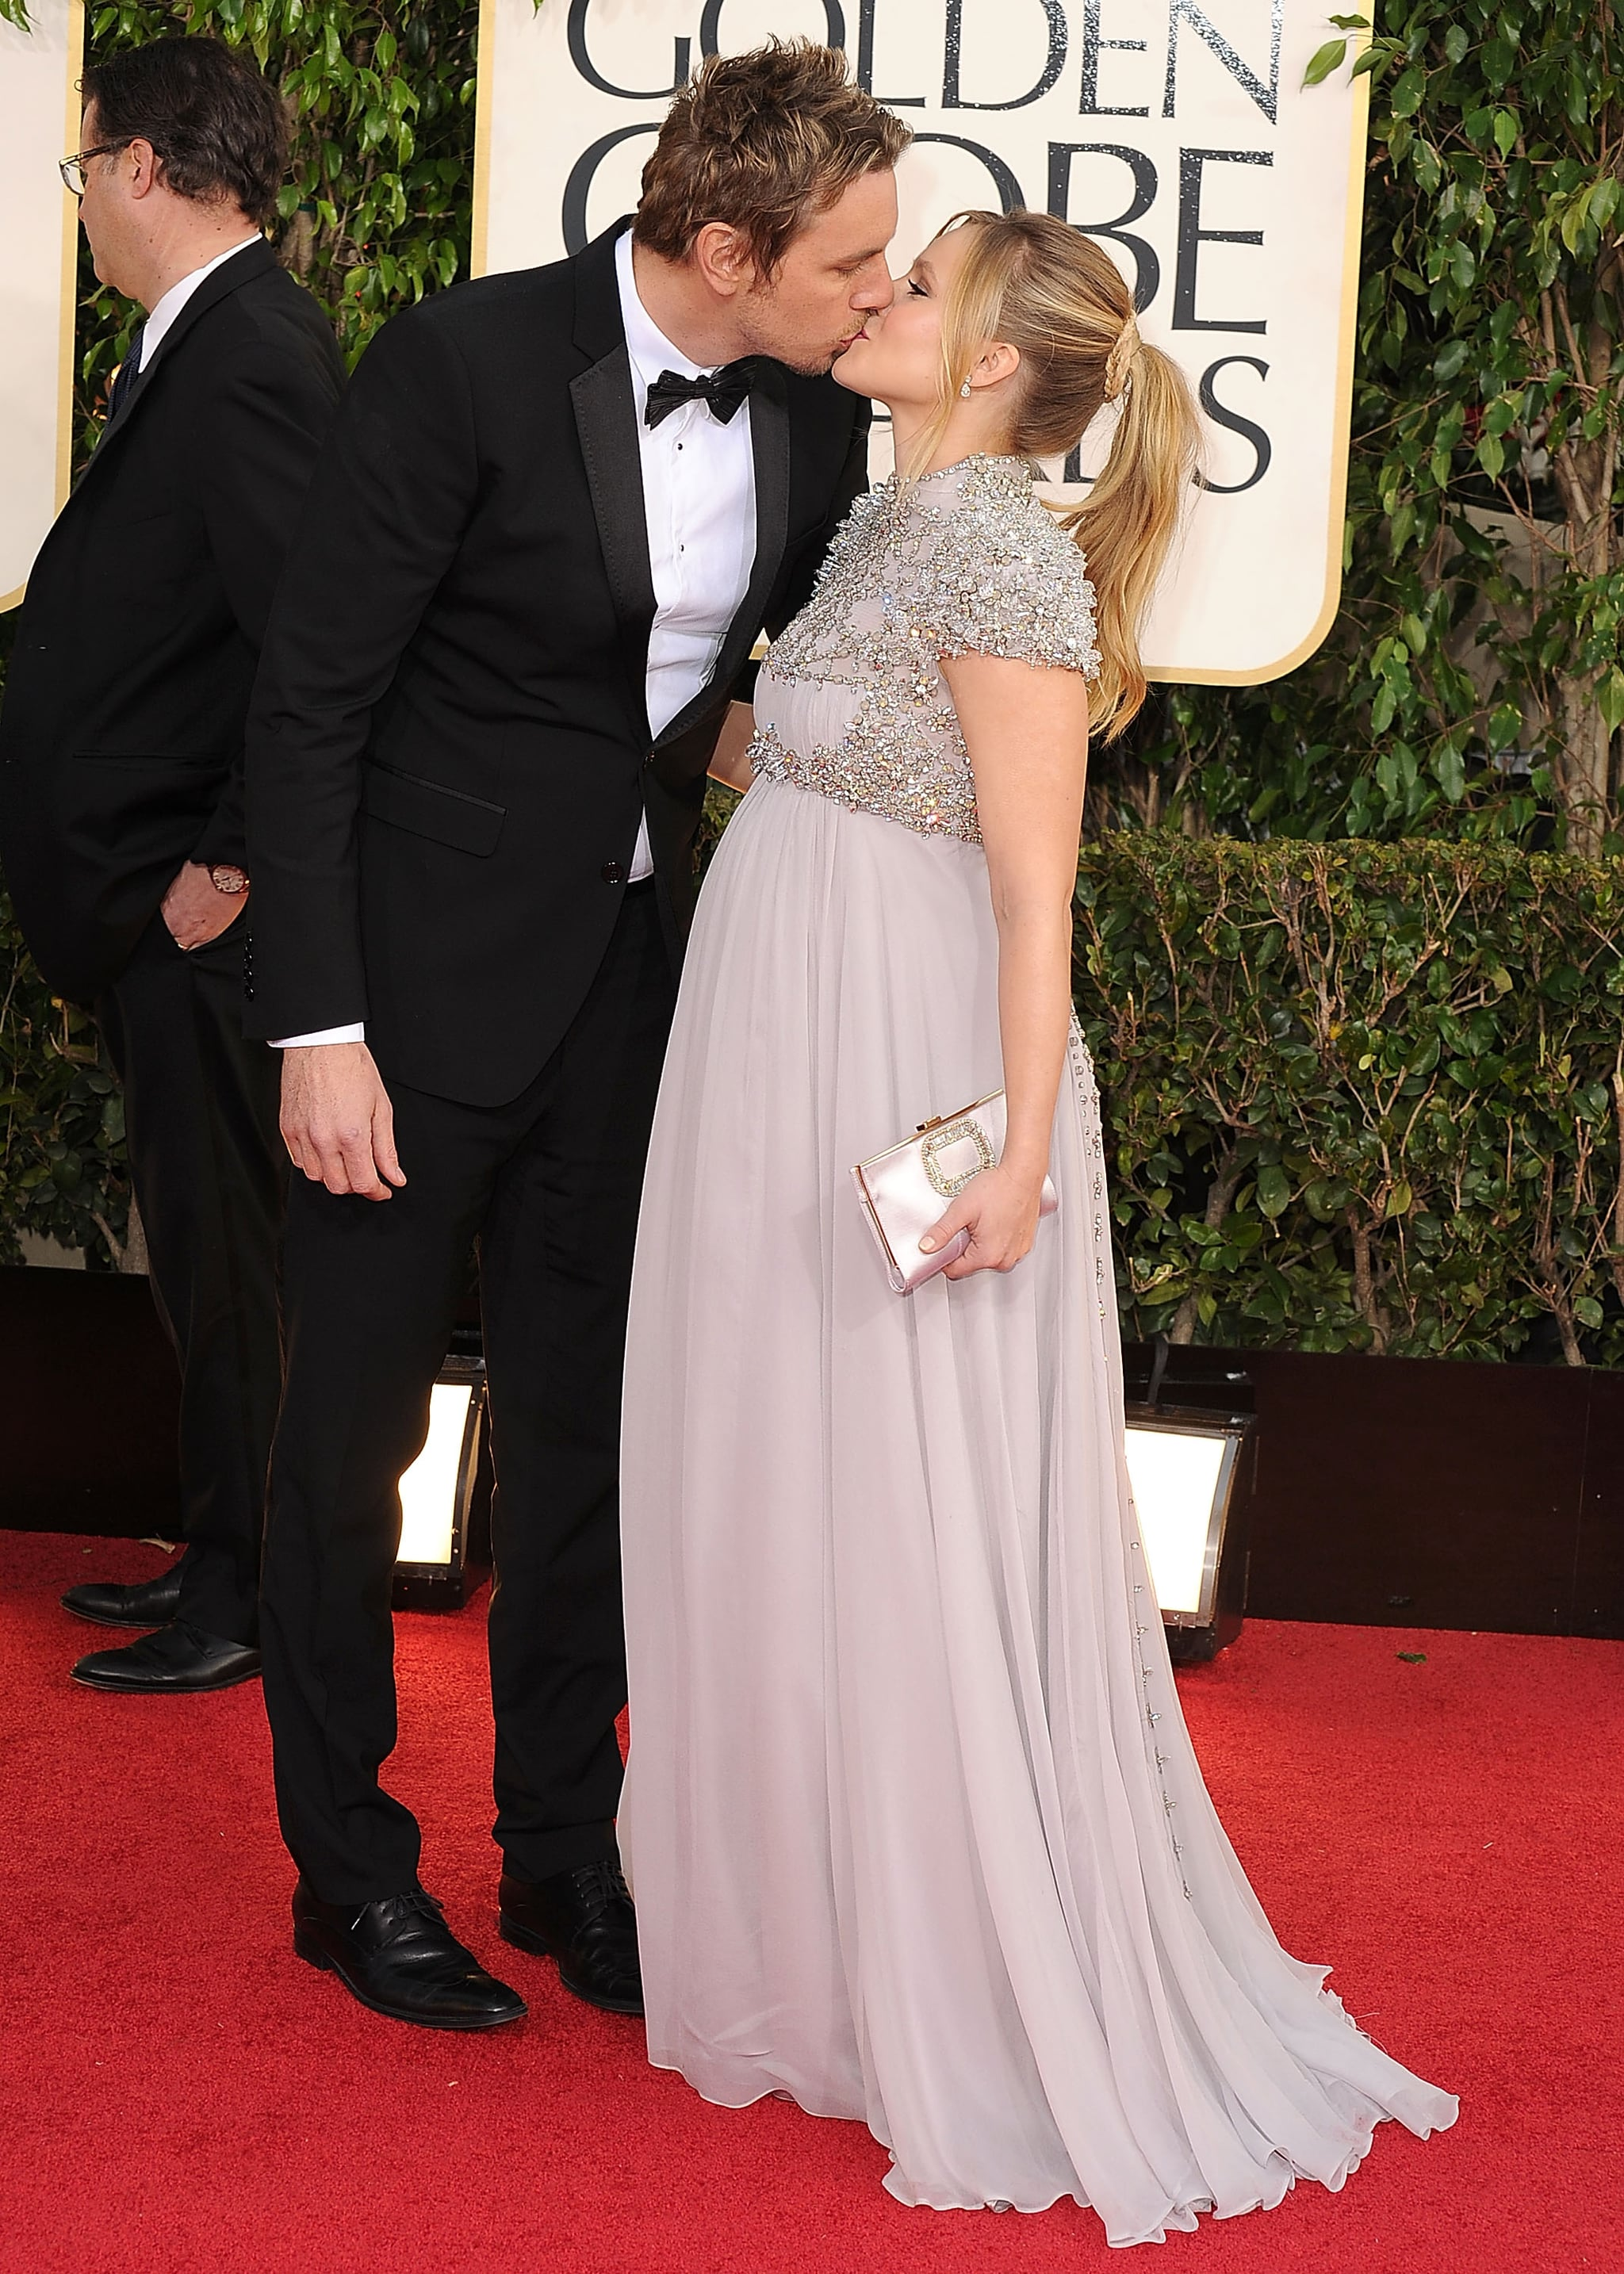 Dax and Kristen locked lips at the 2013 Golden Globes.